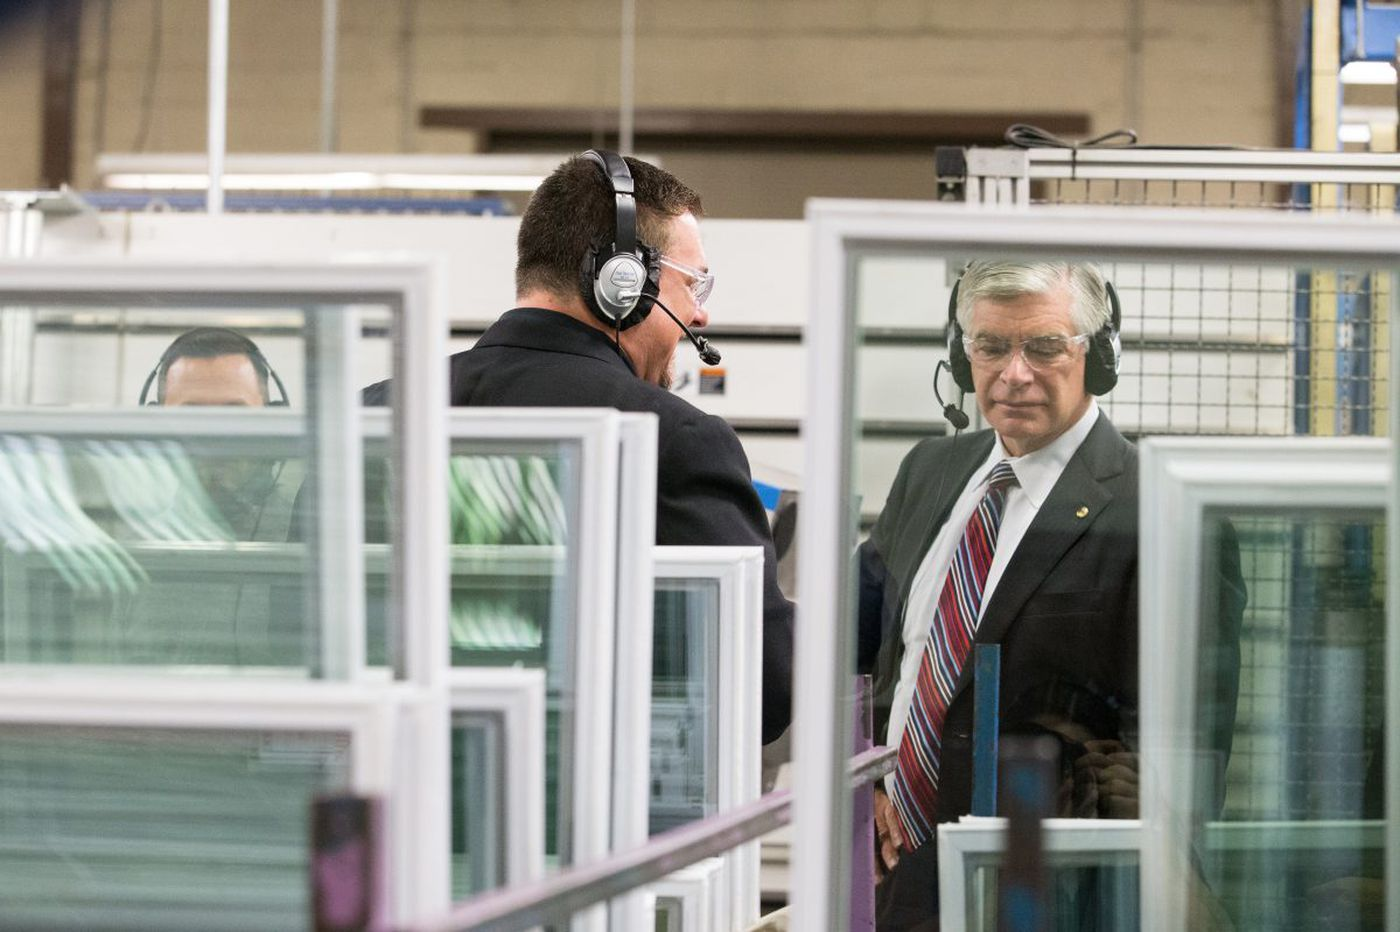 Federal Reserve's Patrick Harker hears what Philly's manufacturers need: capital, know-how, and workers who aren't high